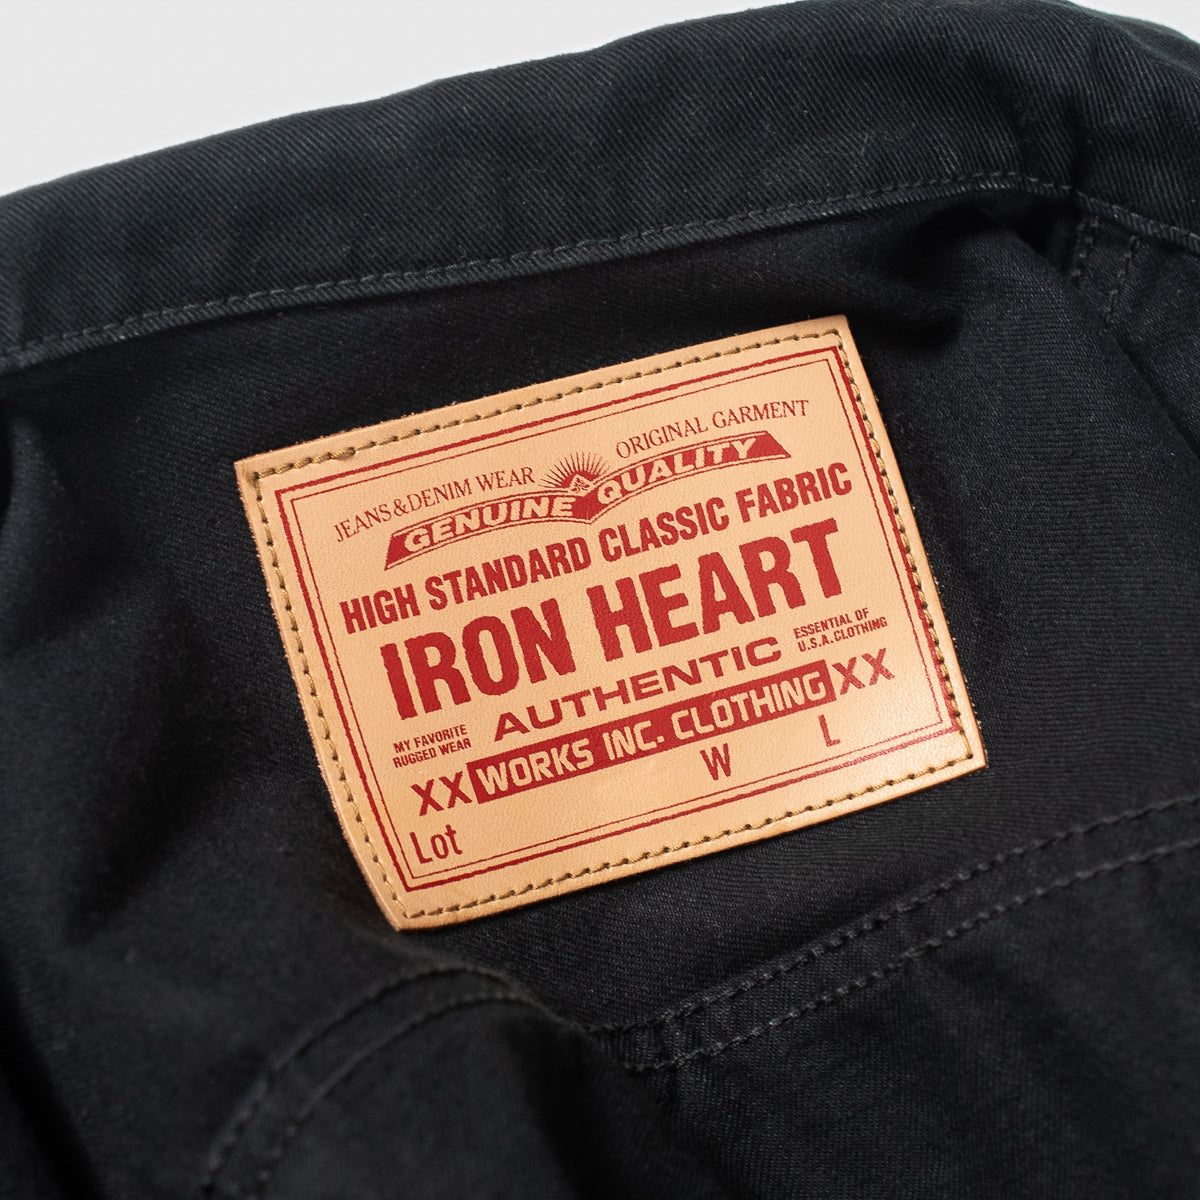 IHJ-84-BLK - 12oz Selvedge Chino Type II Jacket Black